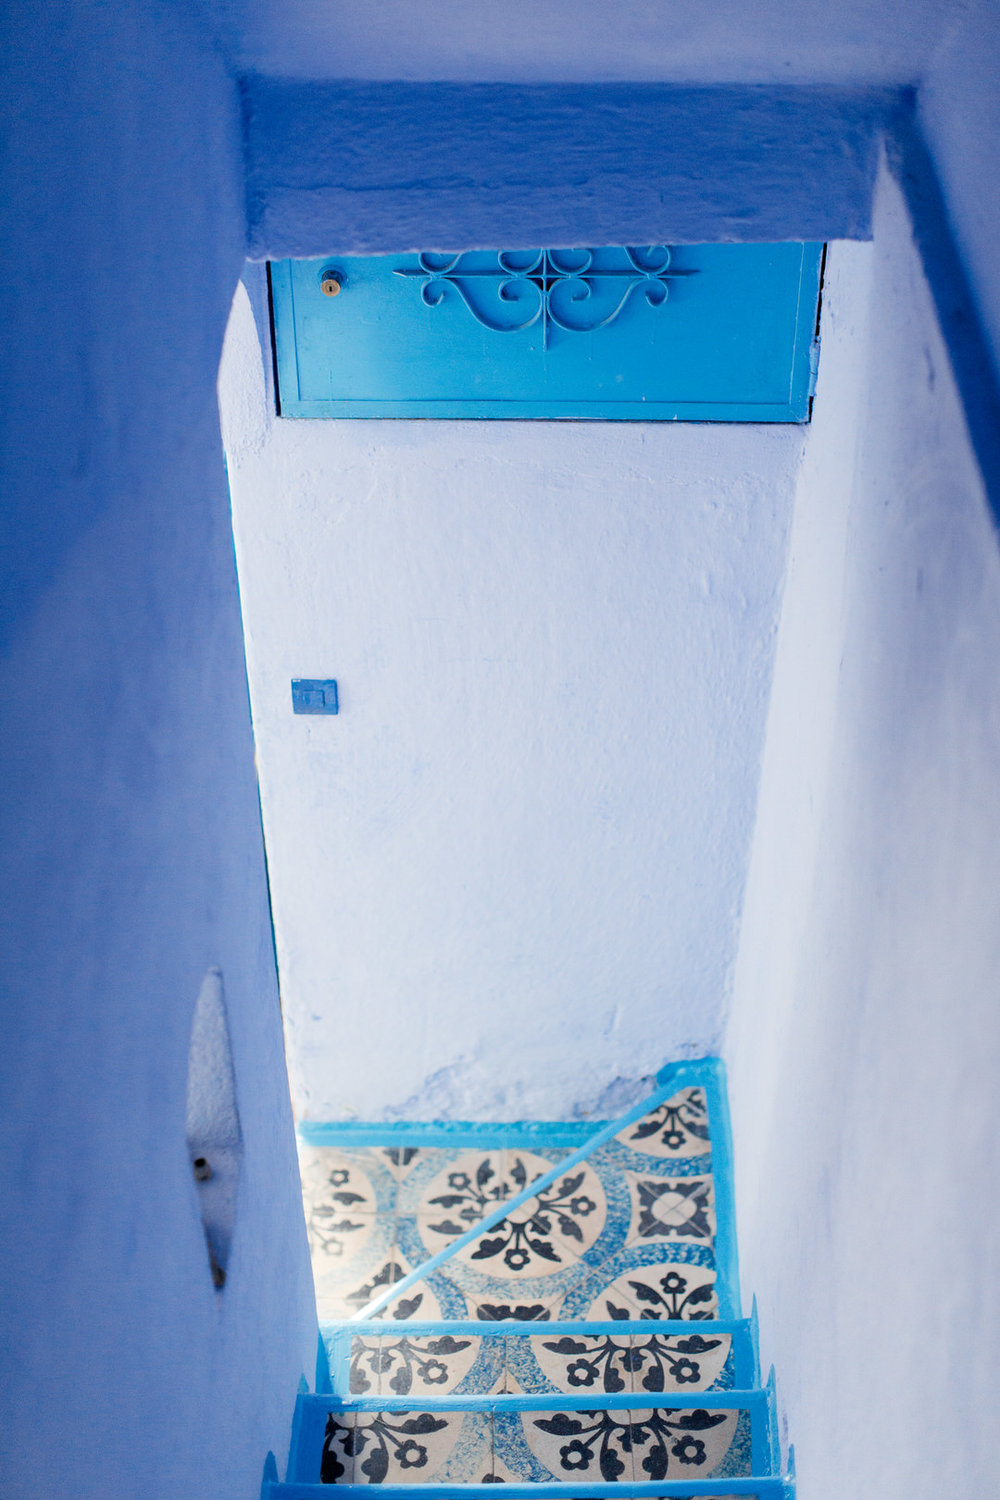 Melissa Kruse Photography - Chefchaouen Morocco (web)-15.jpg